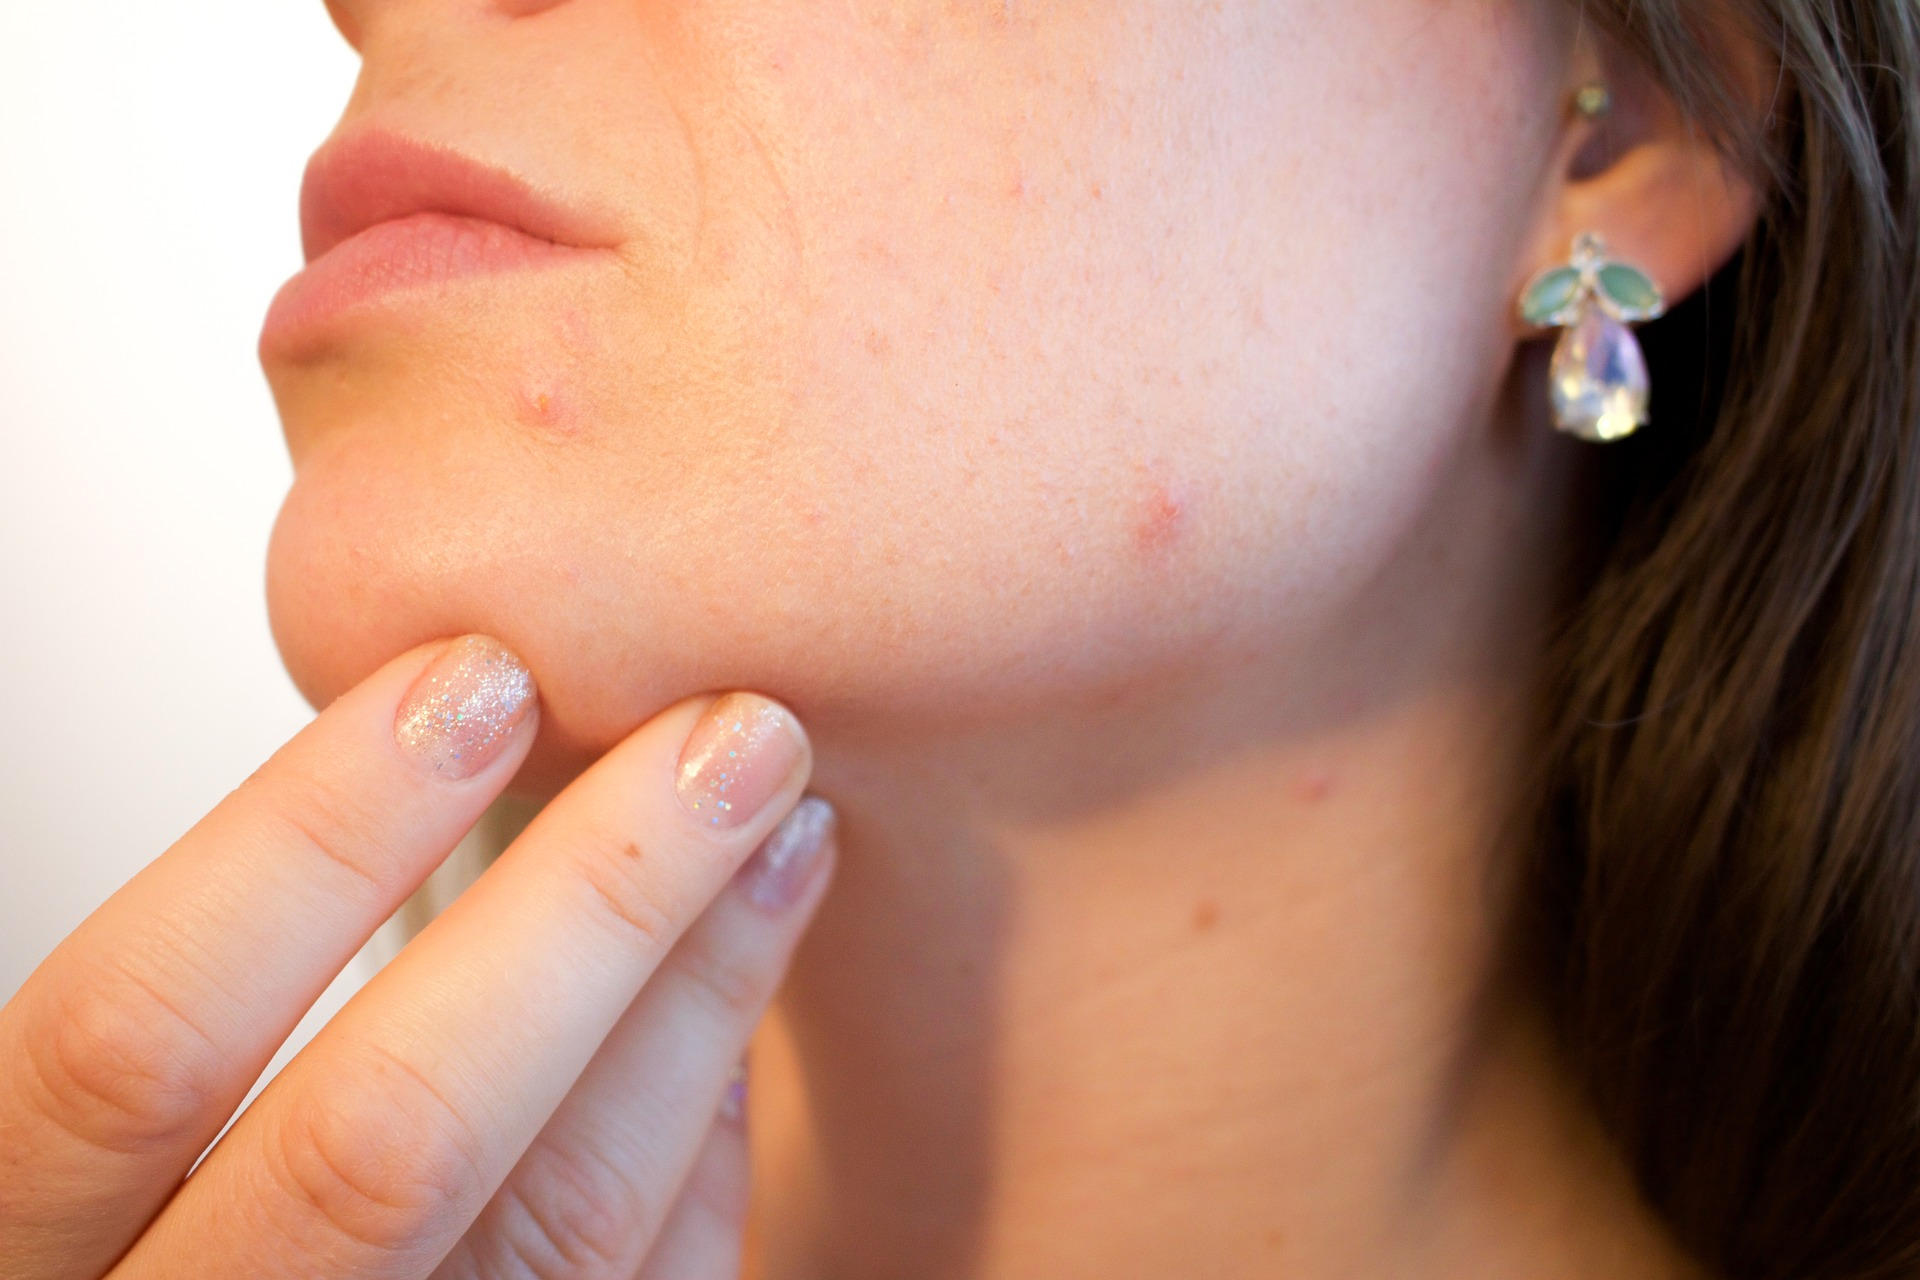 How To Treat Pimple